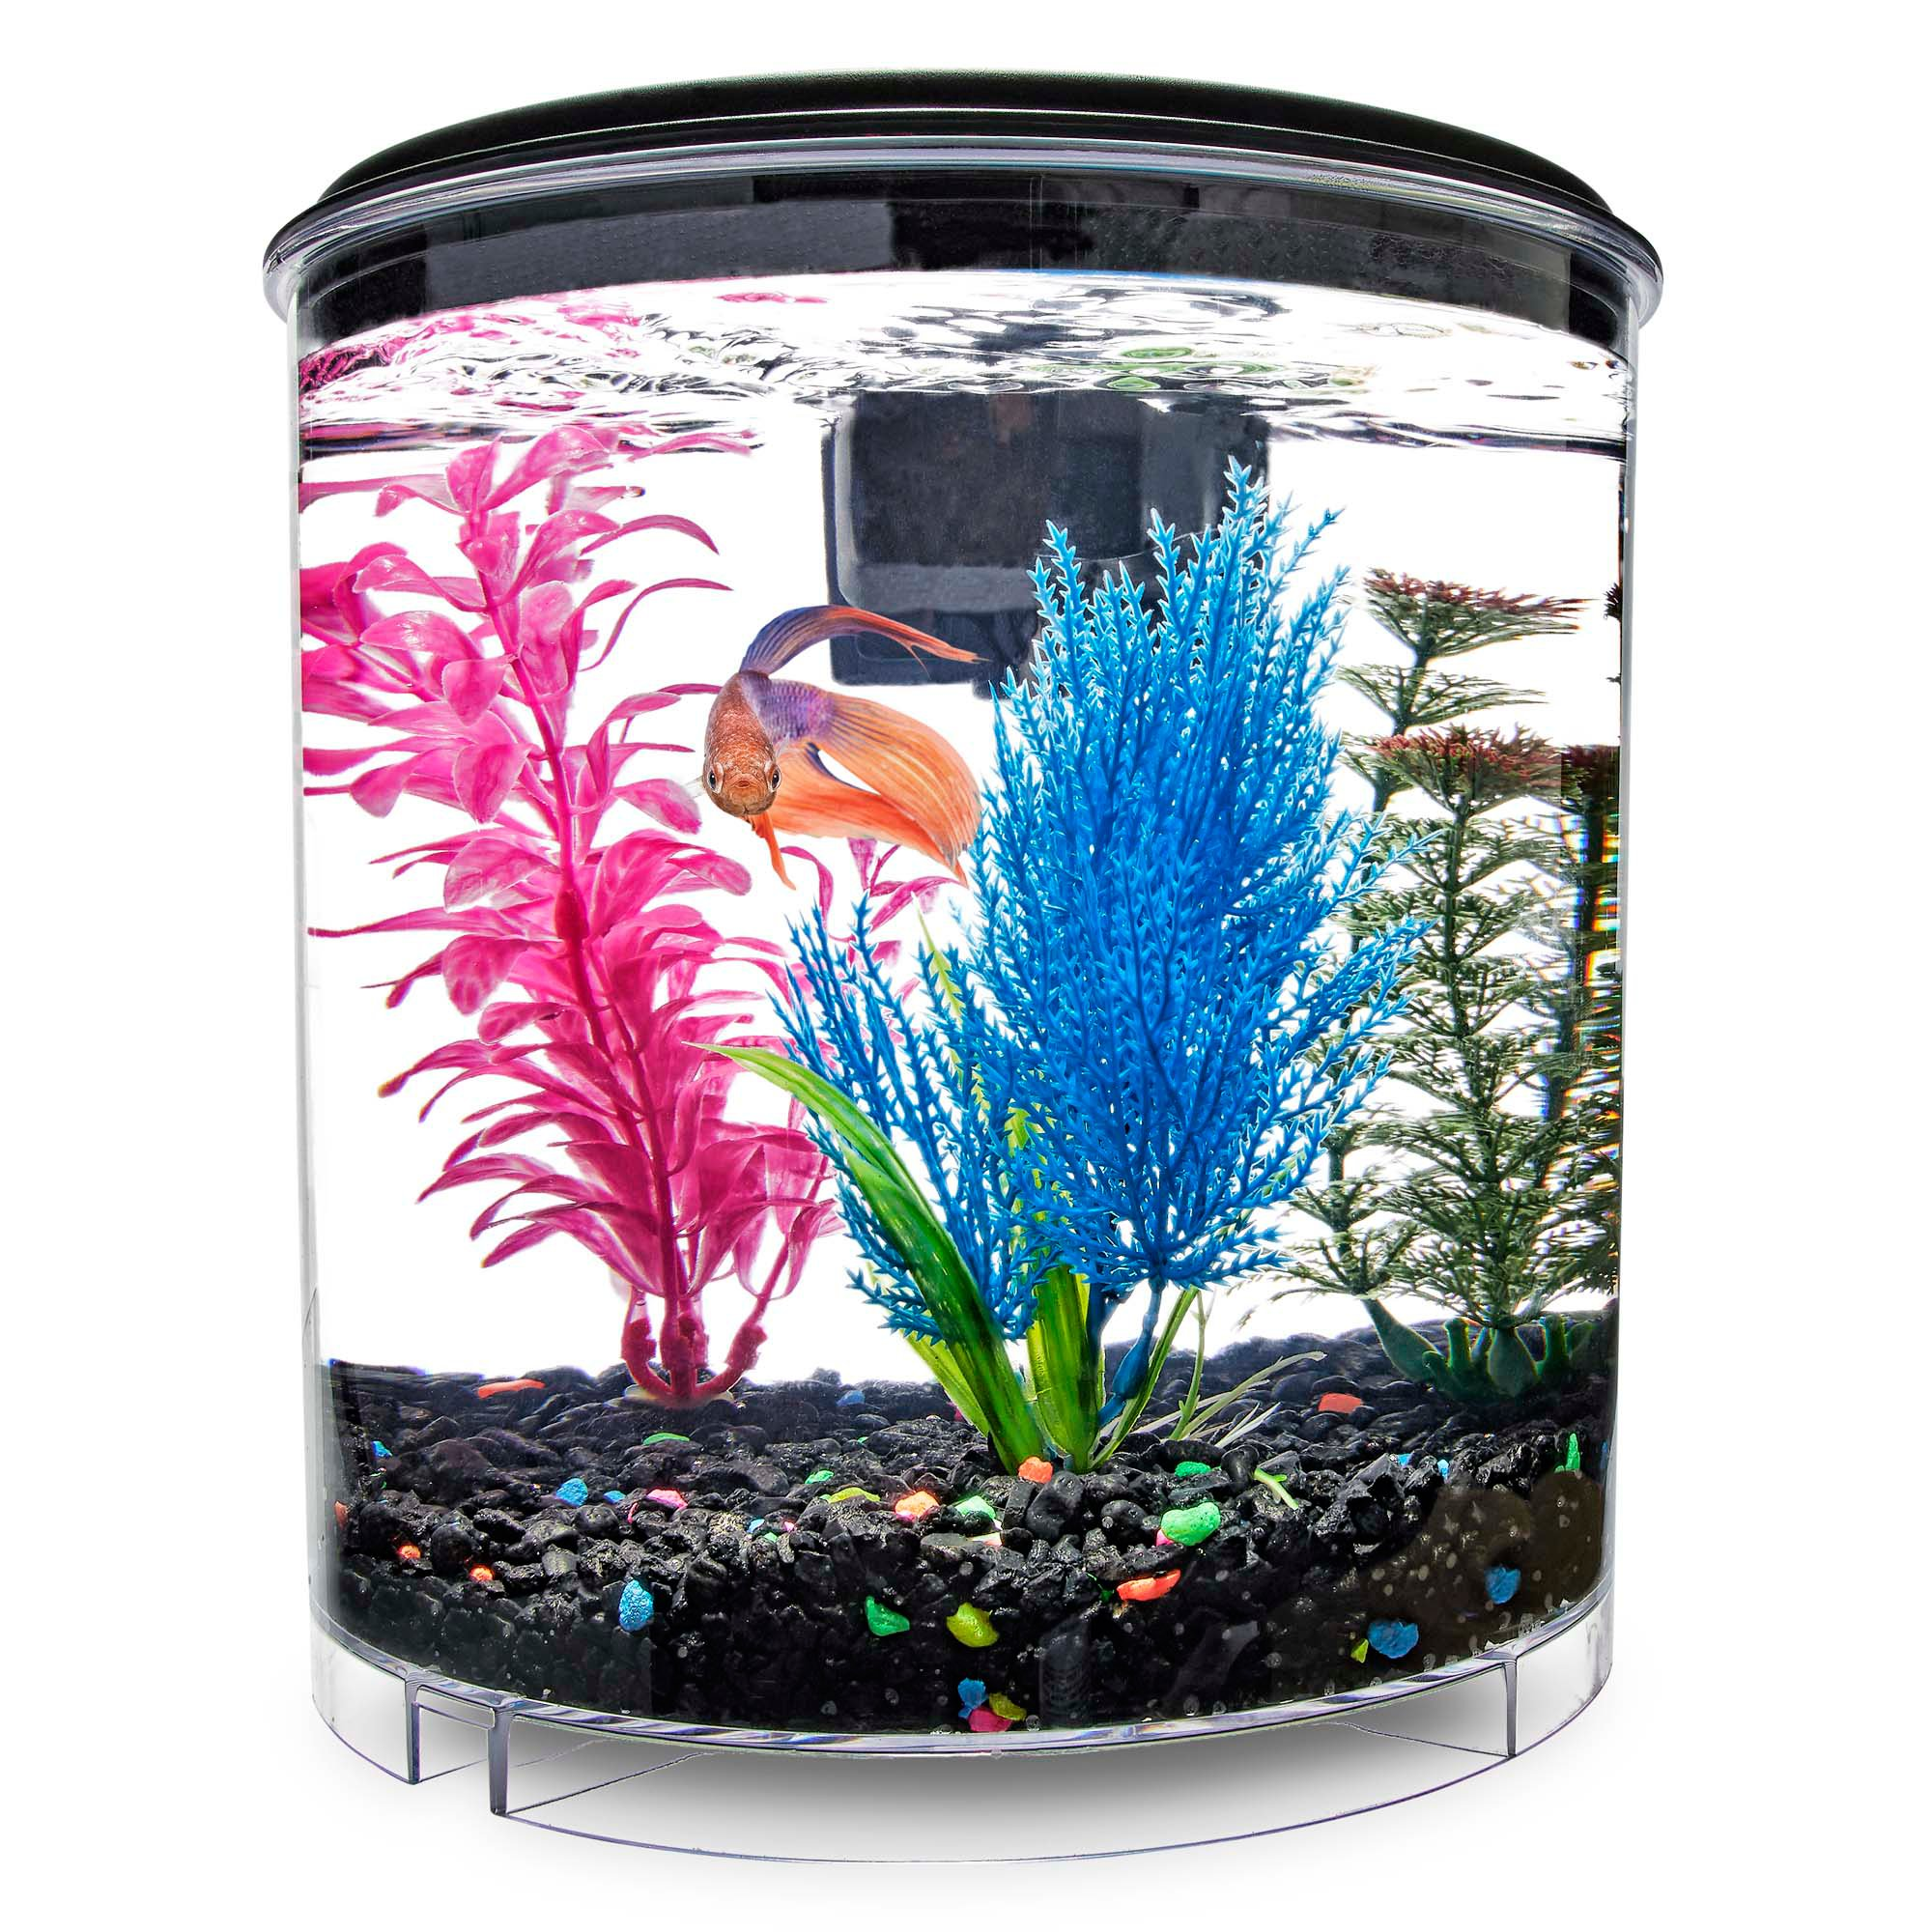 Imagitarium 2 gallon cumberland petco for Betta fish tanks petco